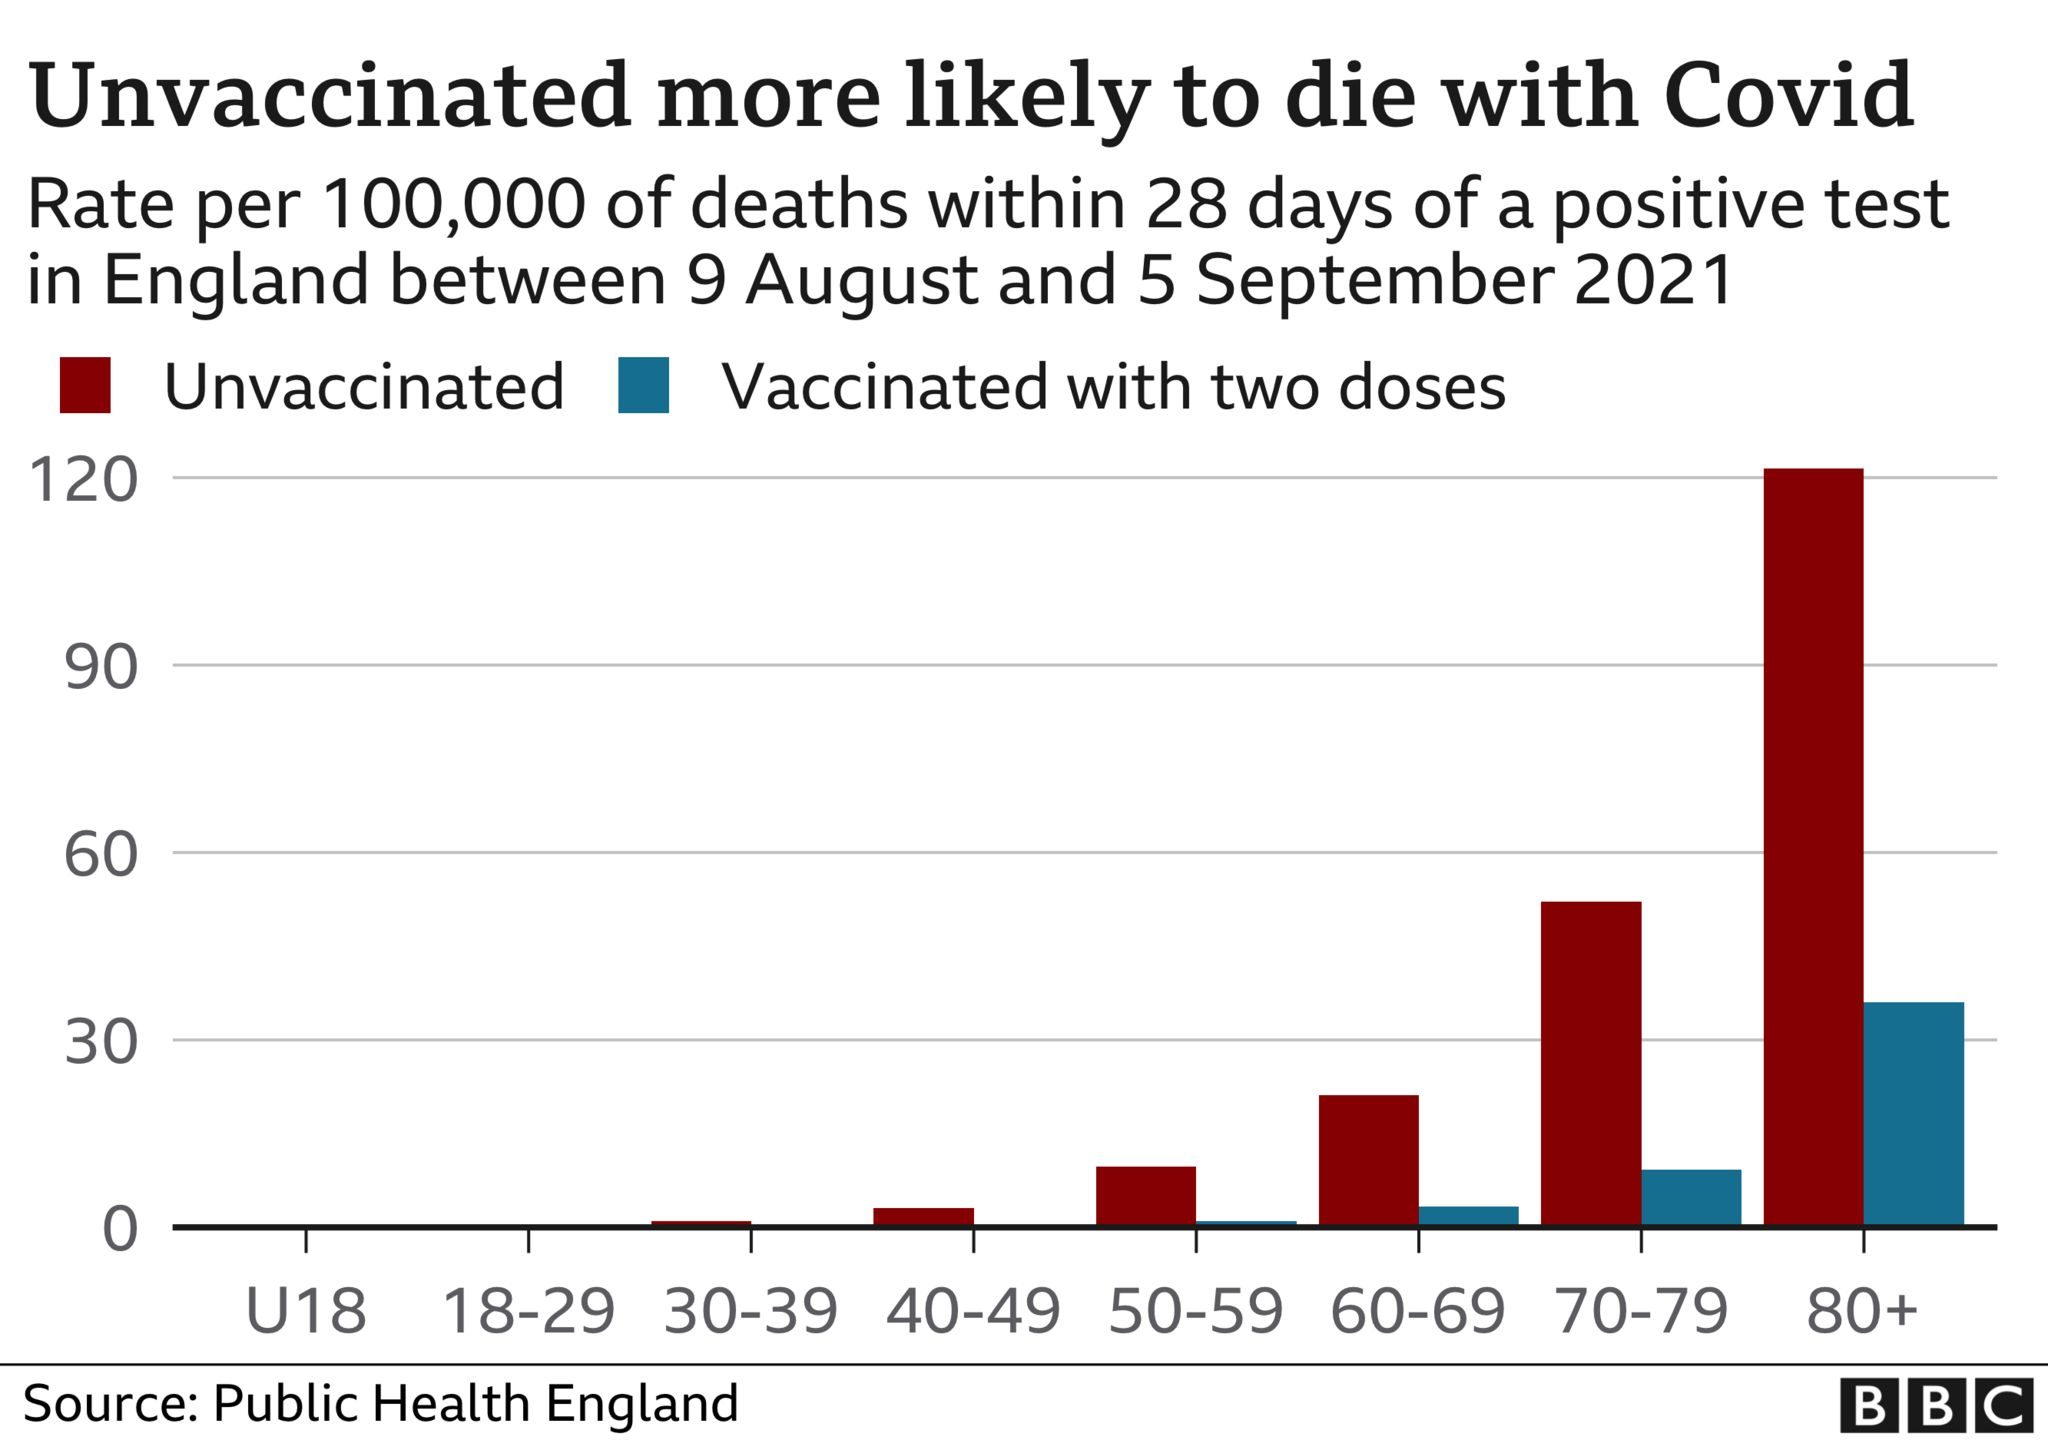 Chart showing that unvaccinated people are much more likely to die with Covid